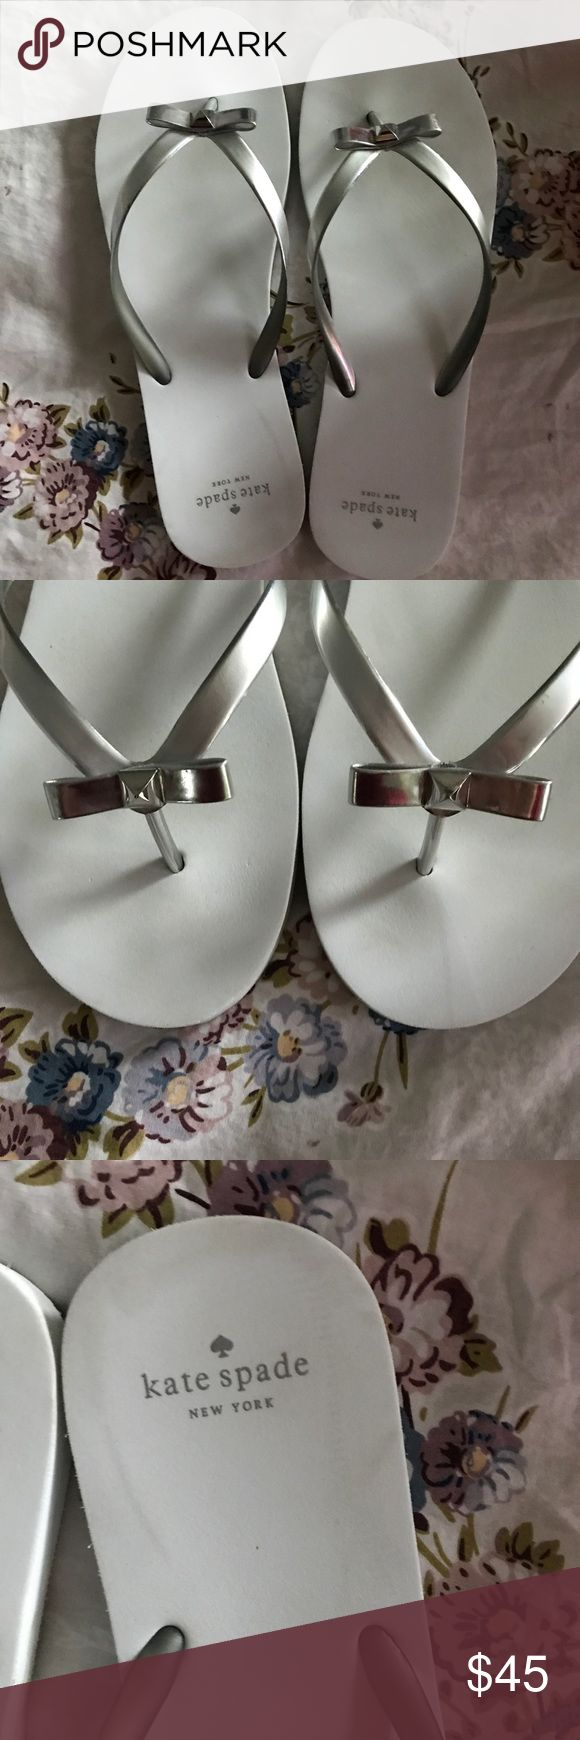 Kate Spade Happily Ever After Flip Flops Only worn twice on my honeymoon. Minimal wear from it as seen on the bottom. Extremely comfortable. Cute bow detail and imprints happily ever after when walking in the sand. Comes with box and silk bag. Perfect for a bride! kate spade Shoes Sandals